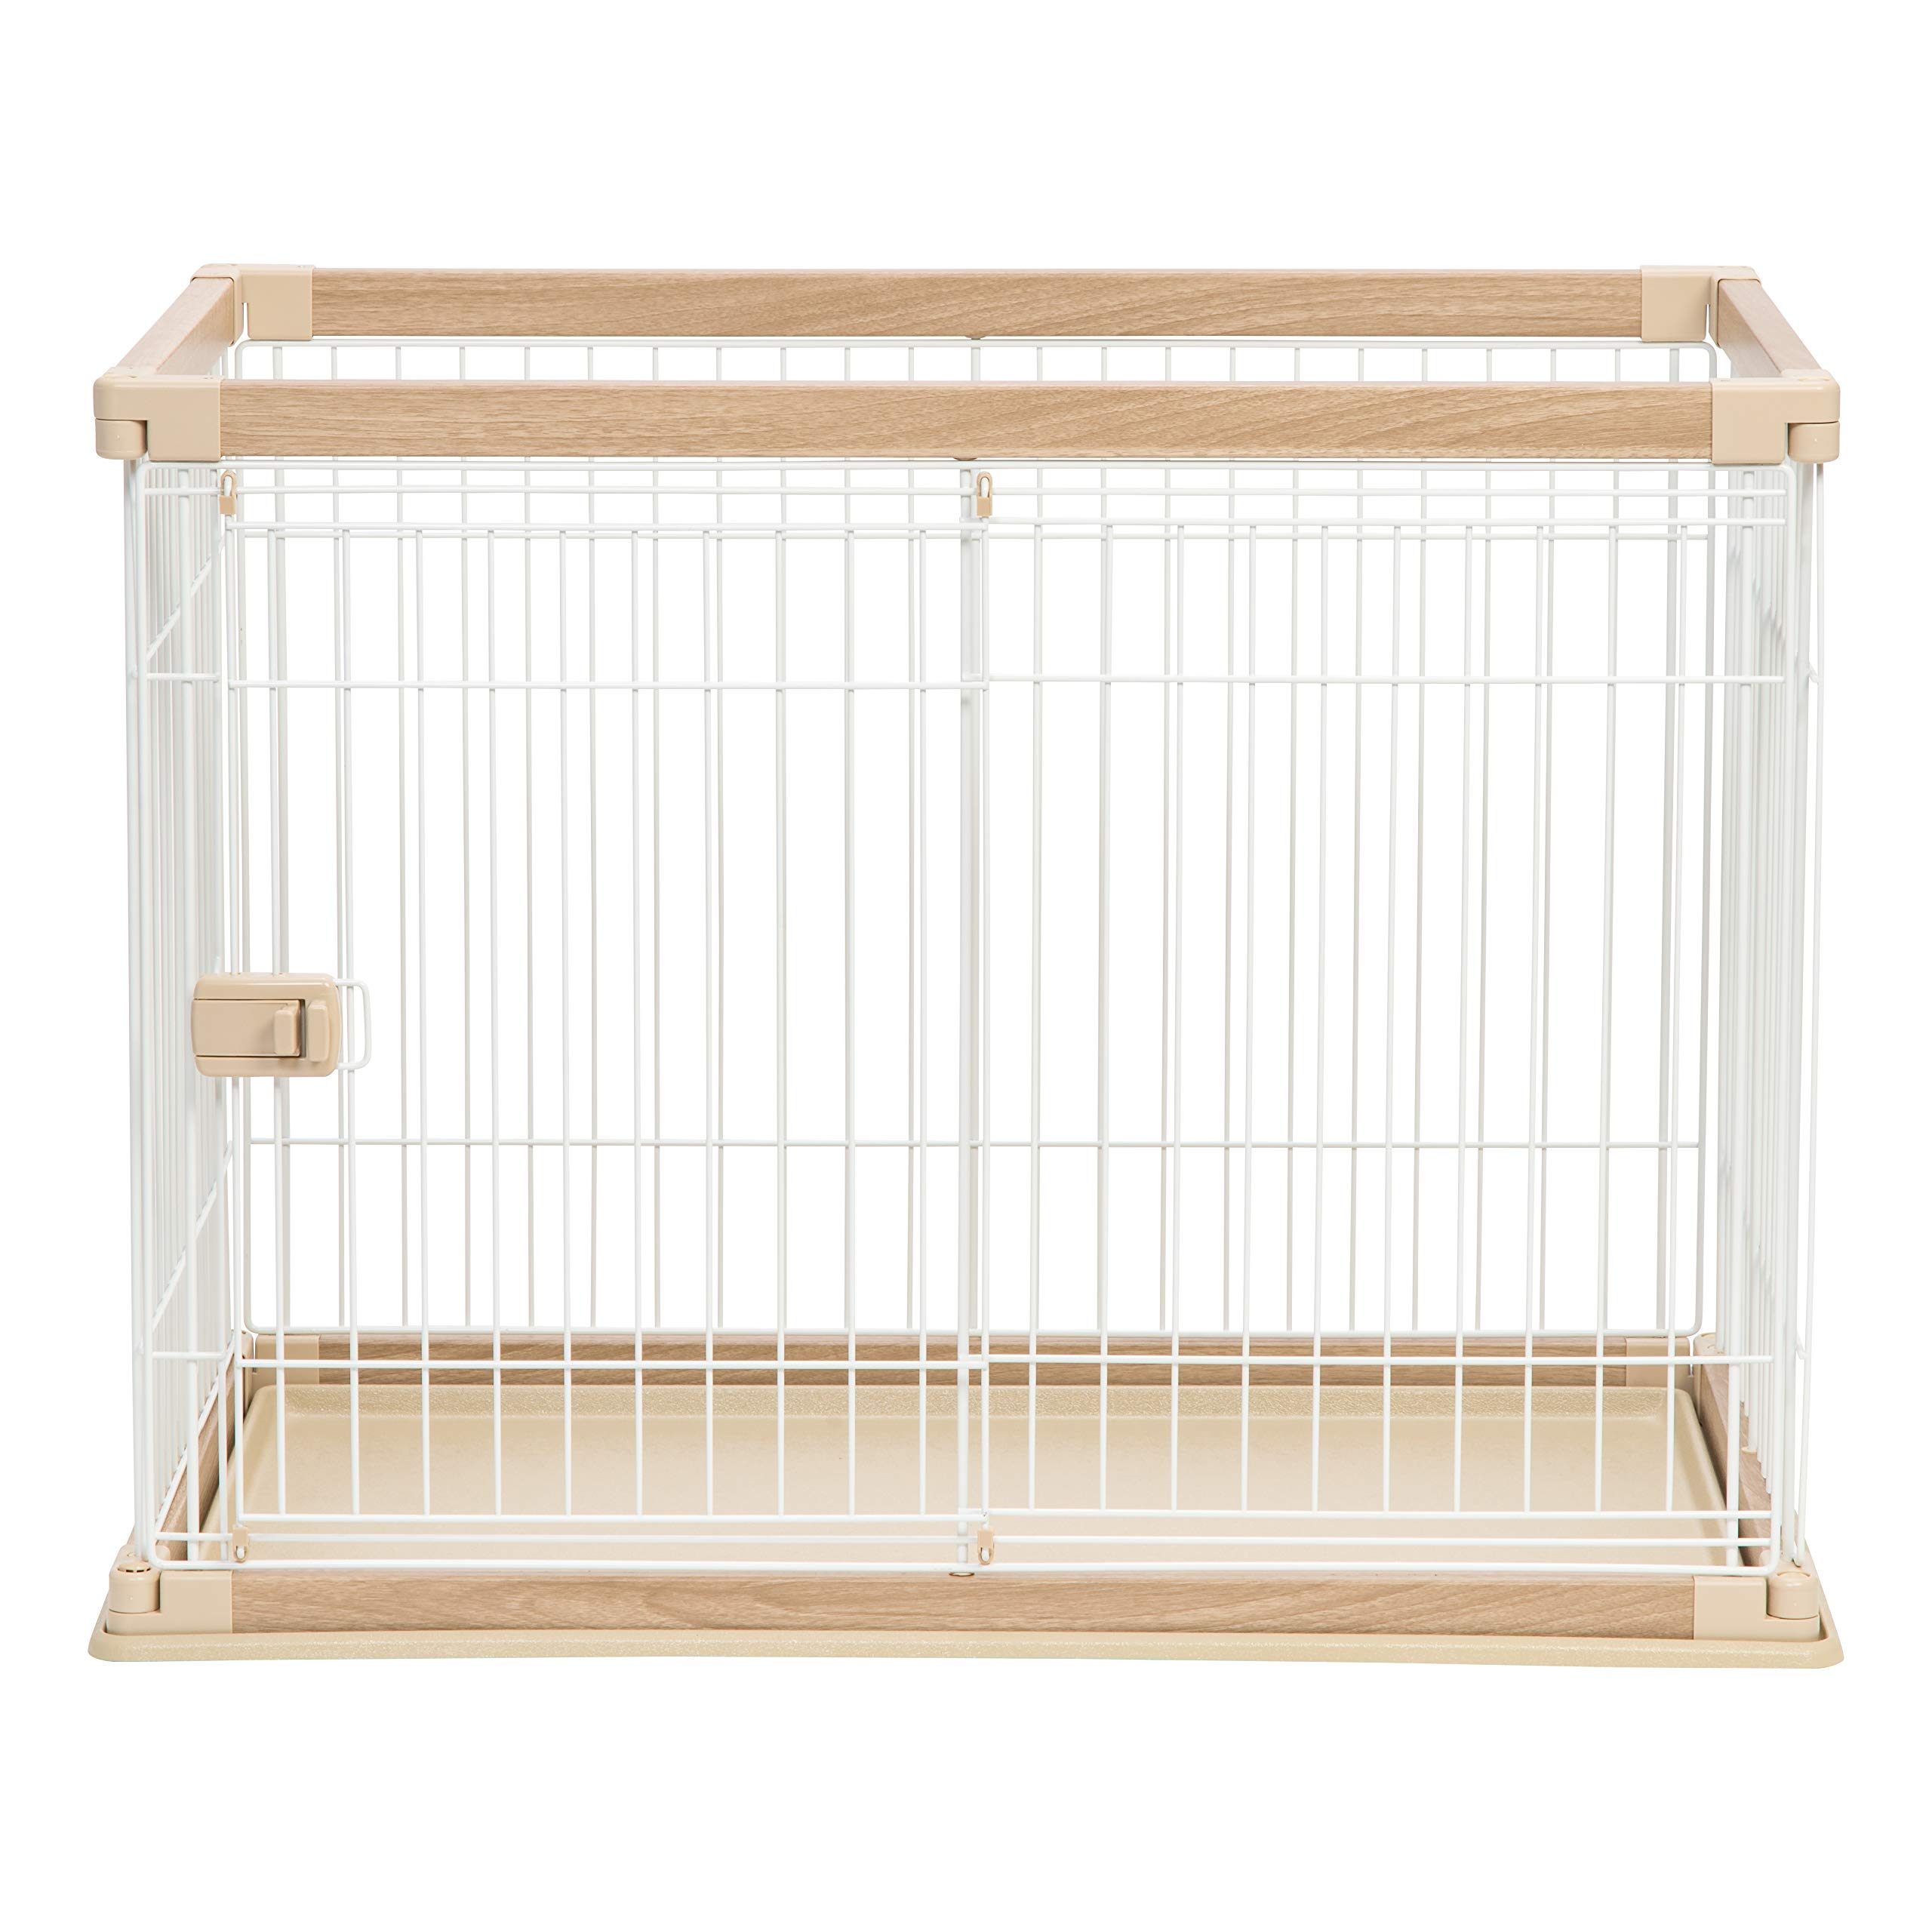 IRIS Medium Wire Open Pet Pen, Brown/White